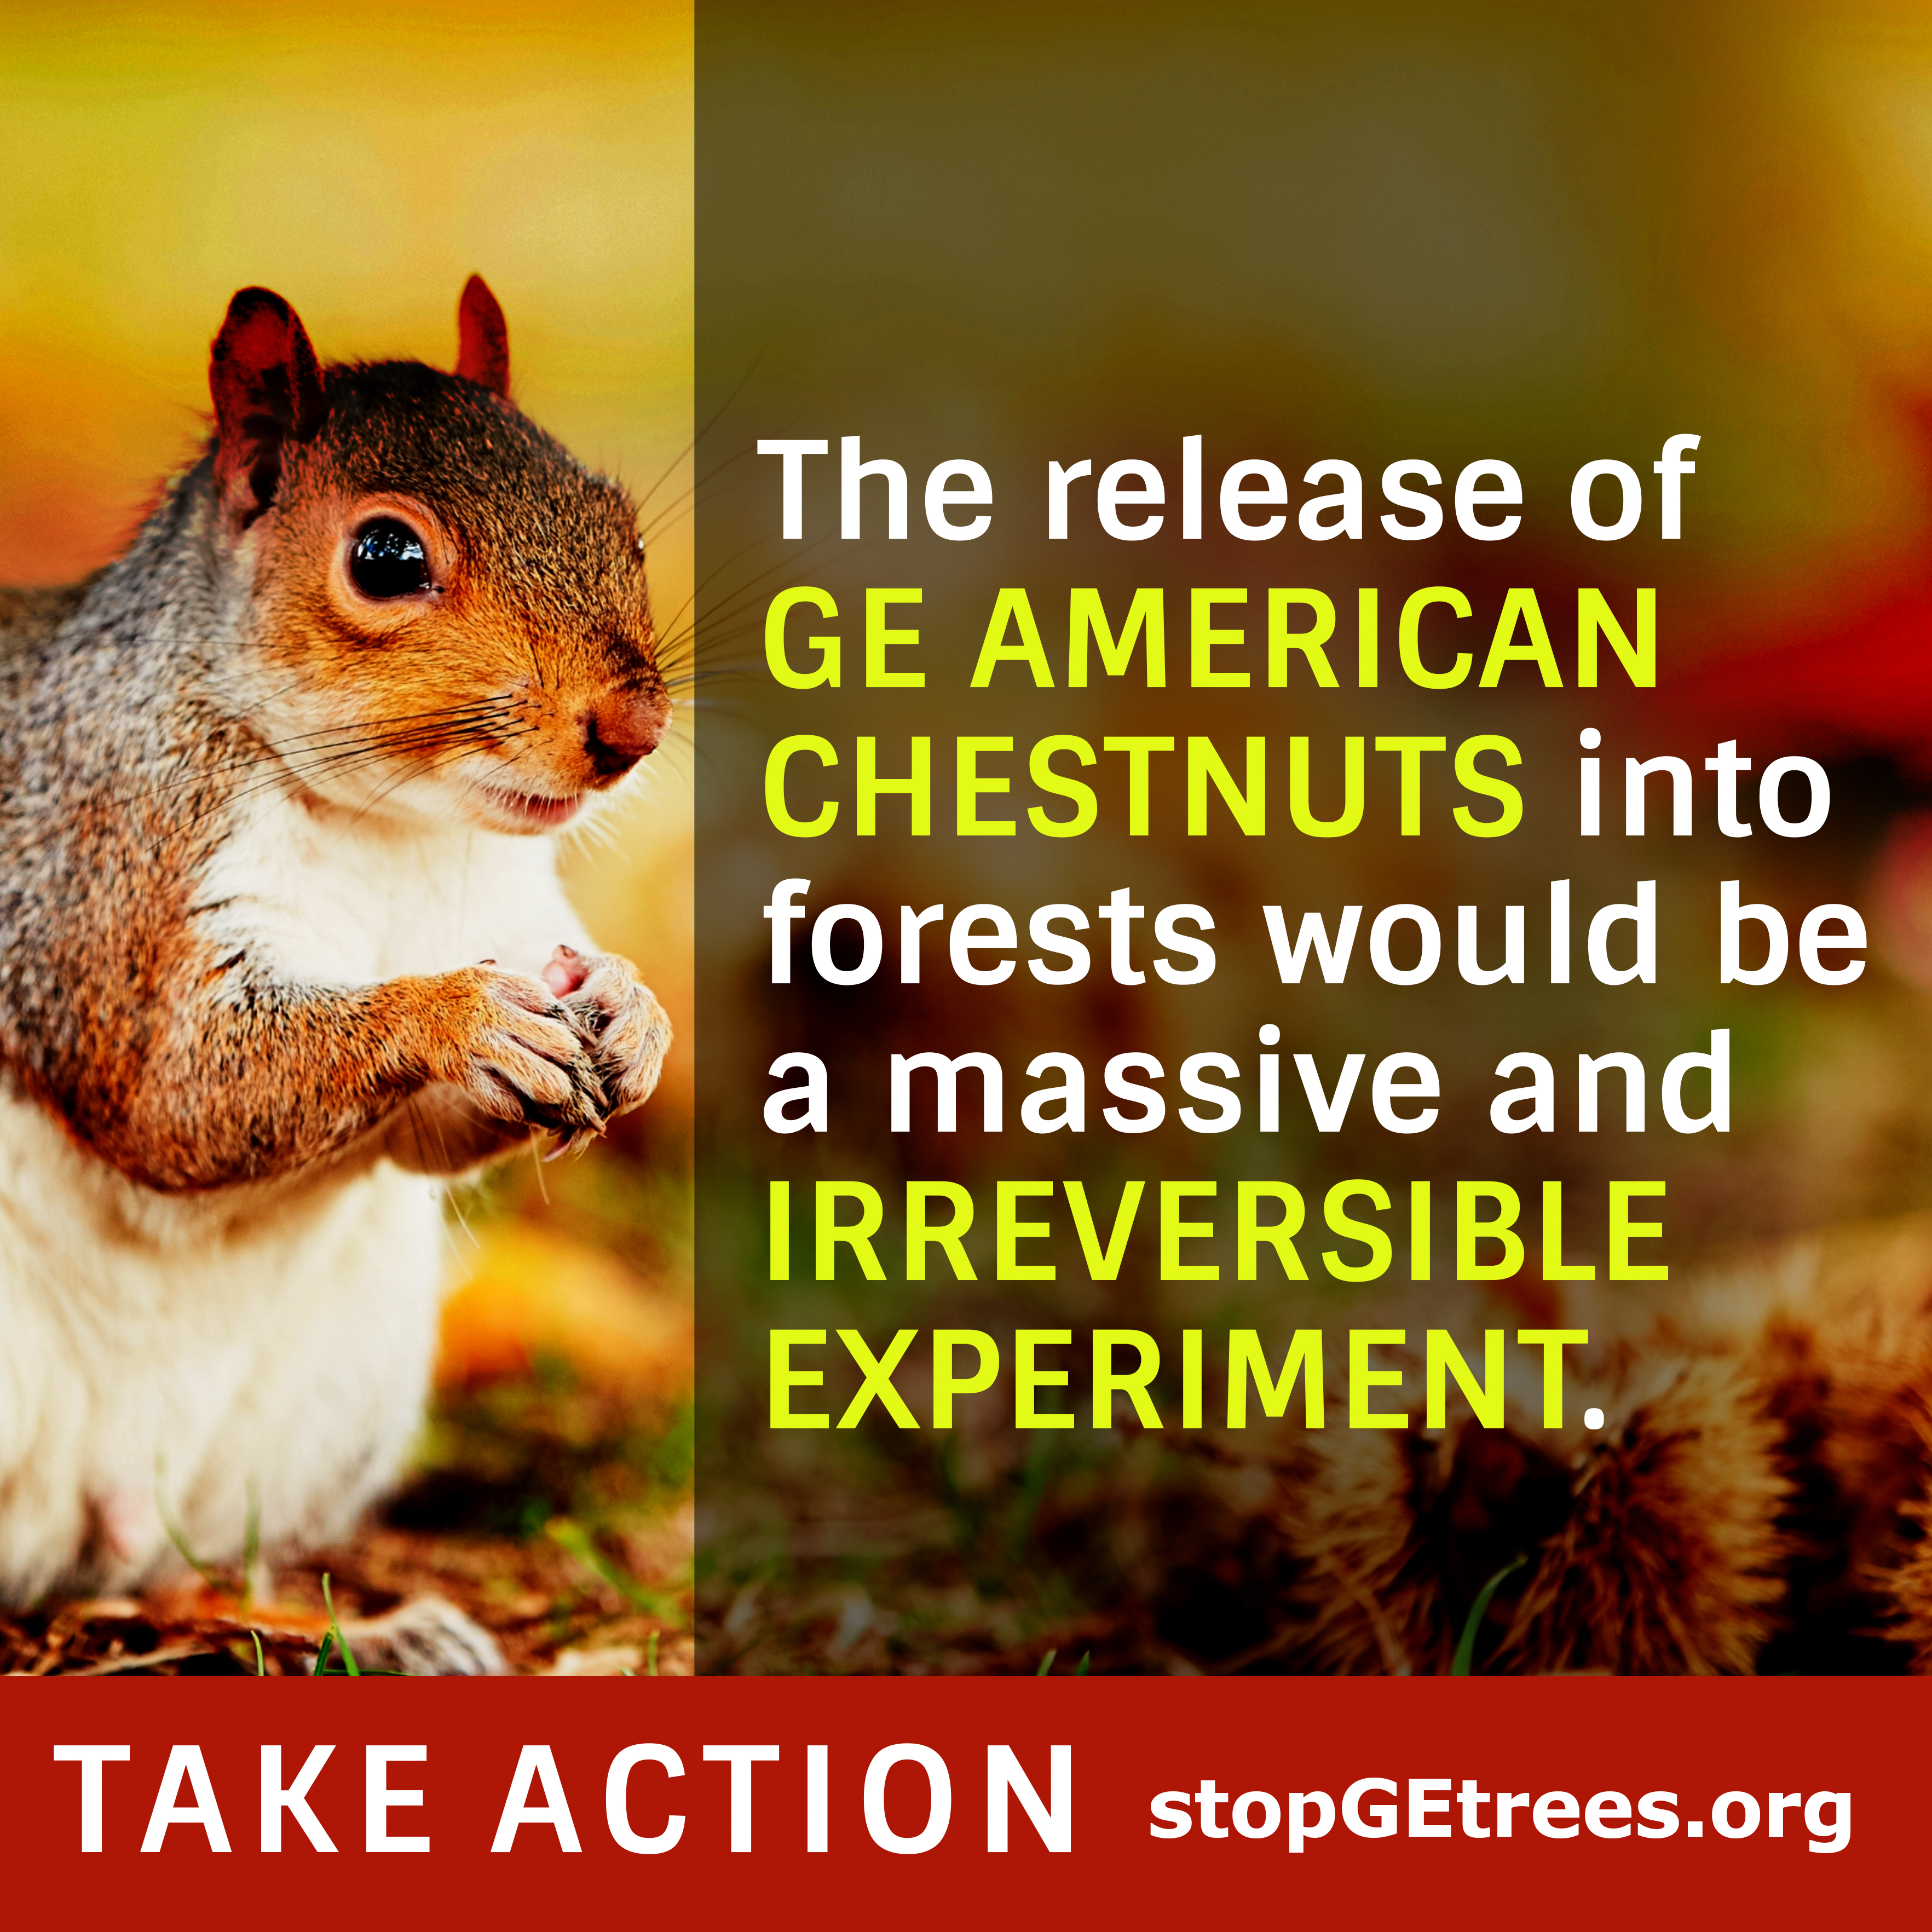 Take-action-square-petition-squirrel-graphic